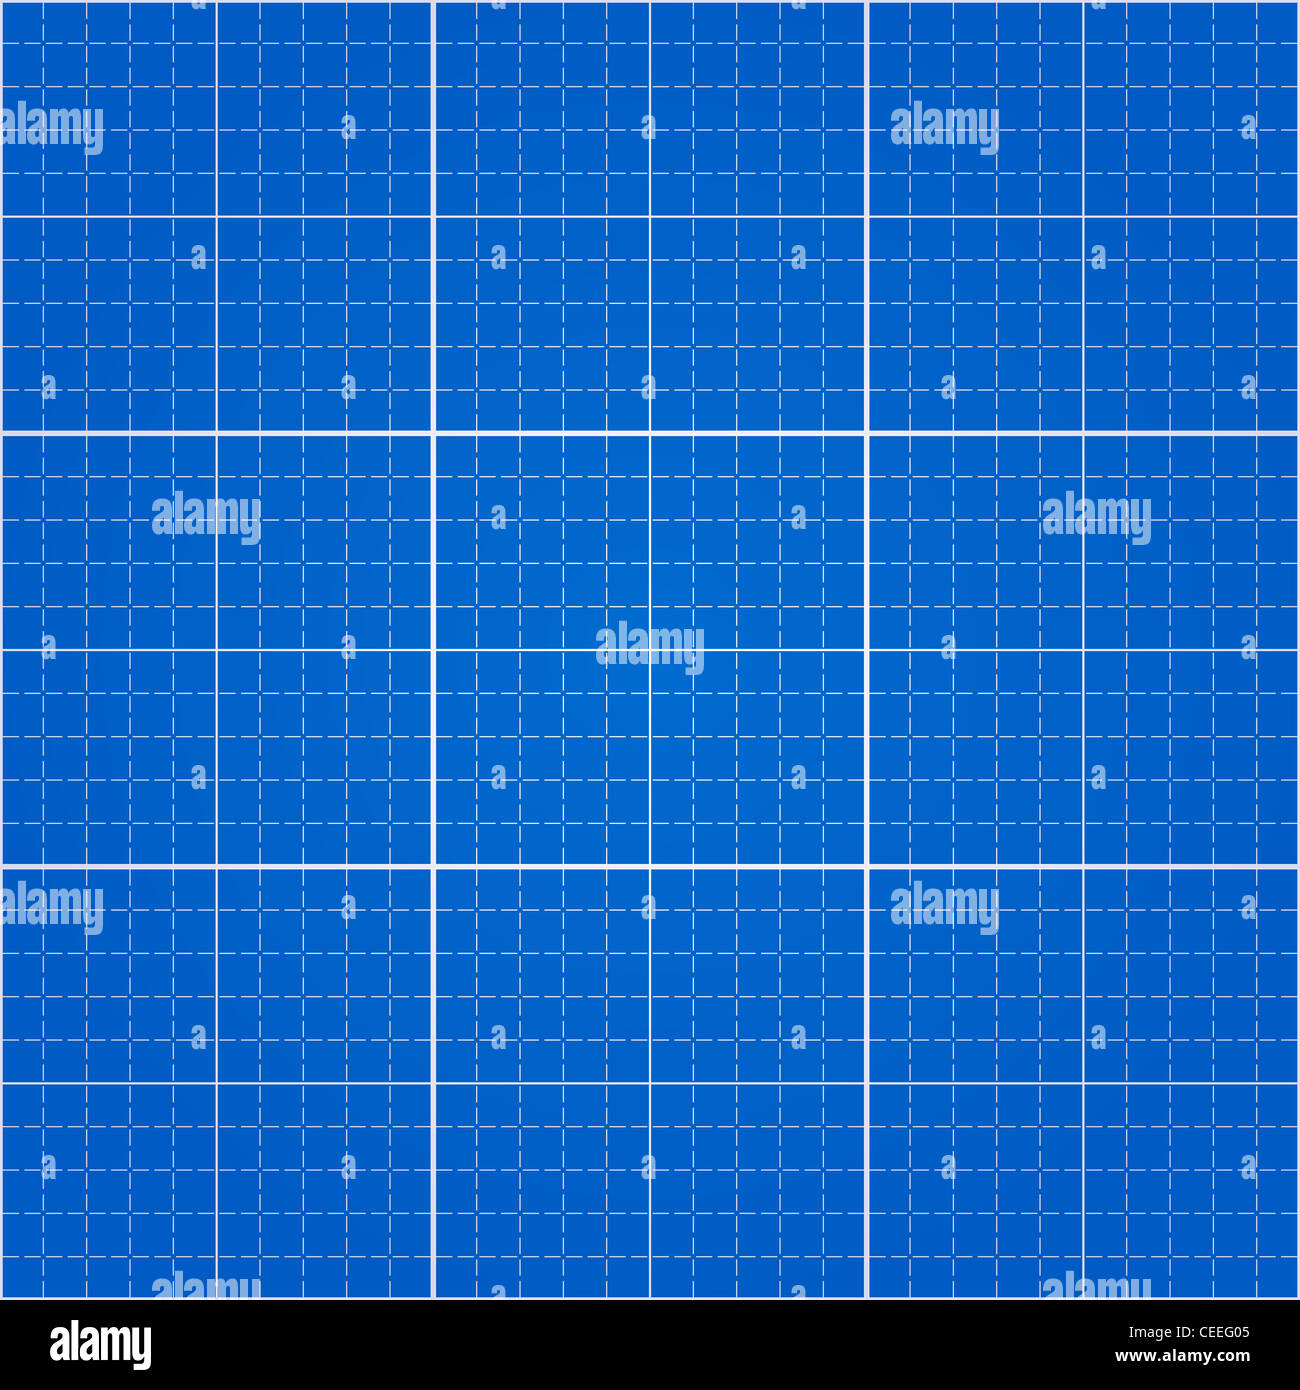 Seamless blueprint background engineering drawing blue paper stock seamless blueprint background engineering drawing blue paper background with pattern swatch in eps file malvernweather Images